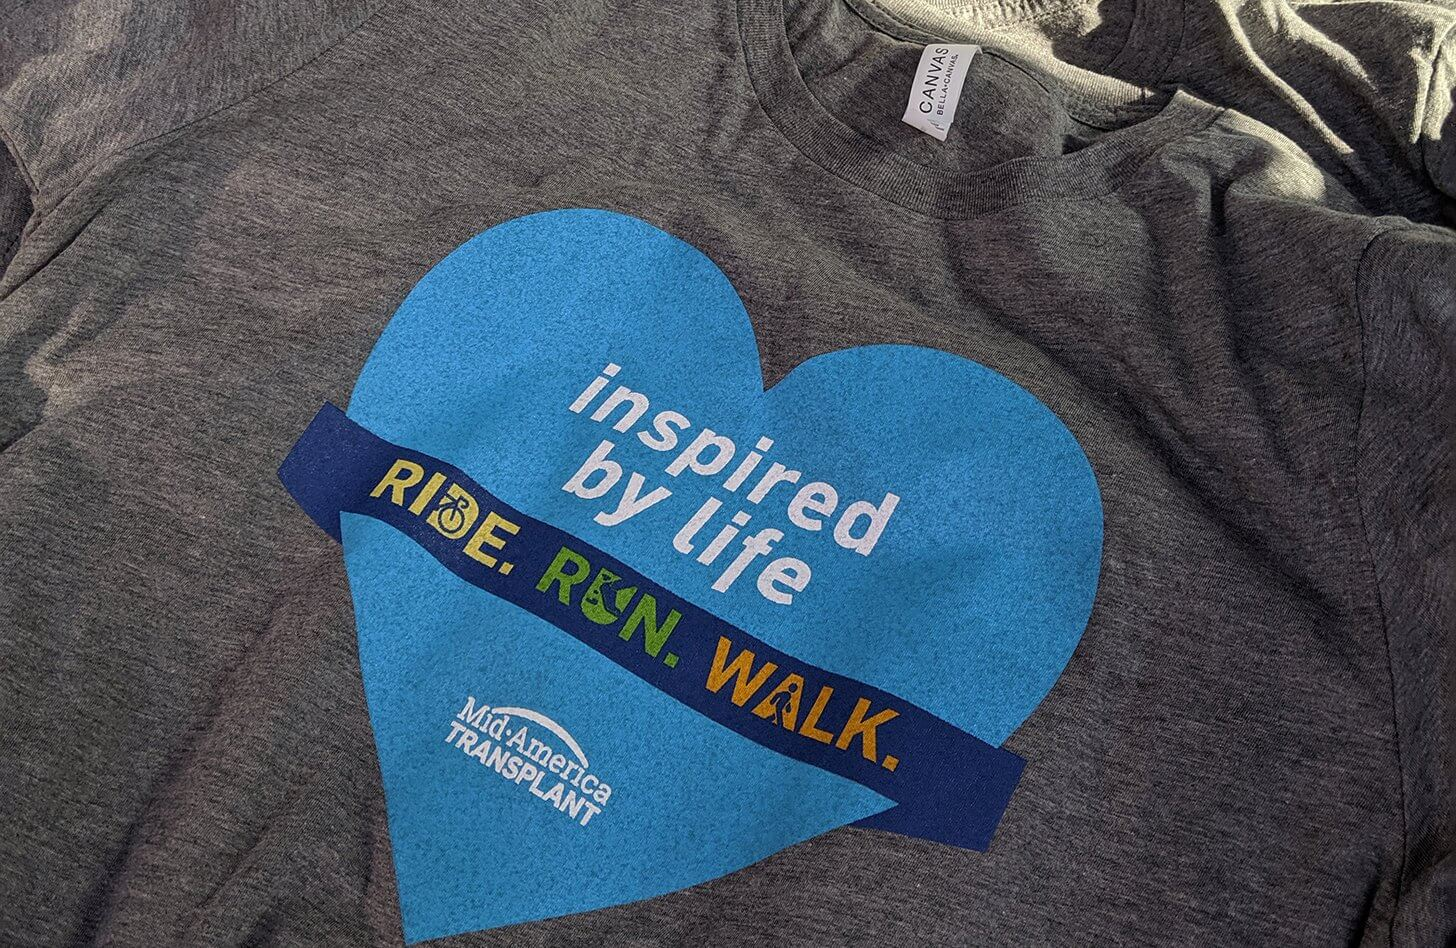 Special t-shirts were made for attendees of the Inspired by Life Ride Run Walk.